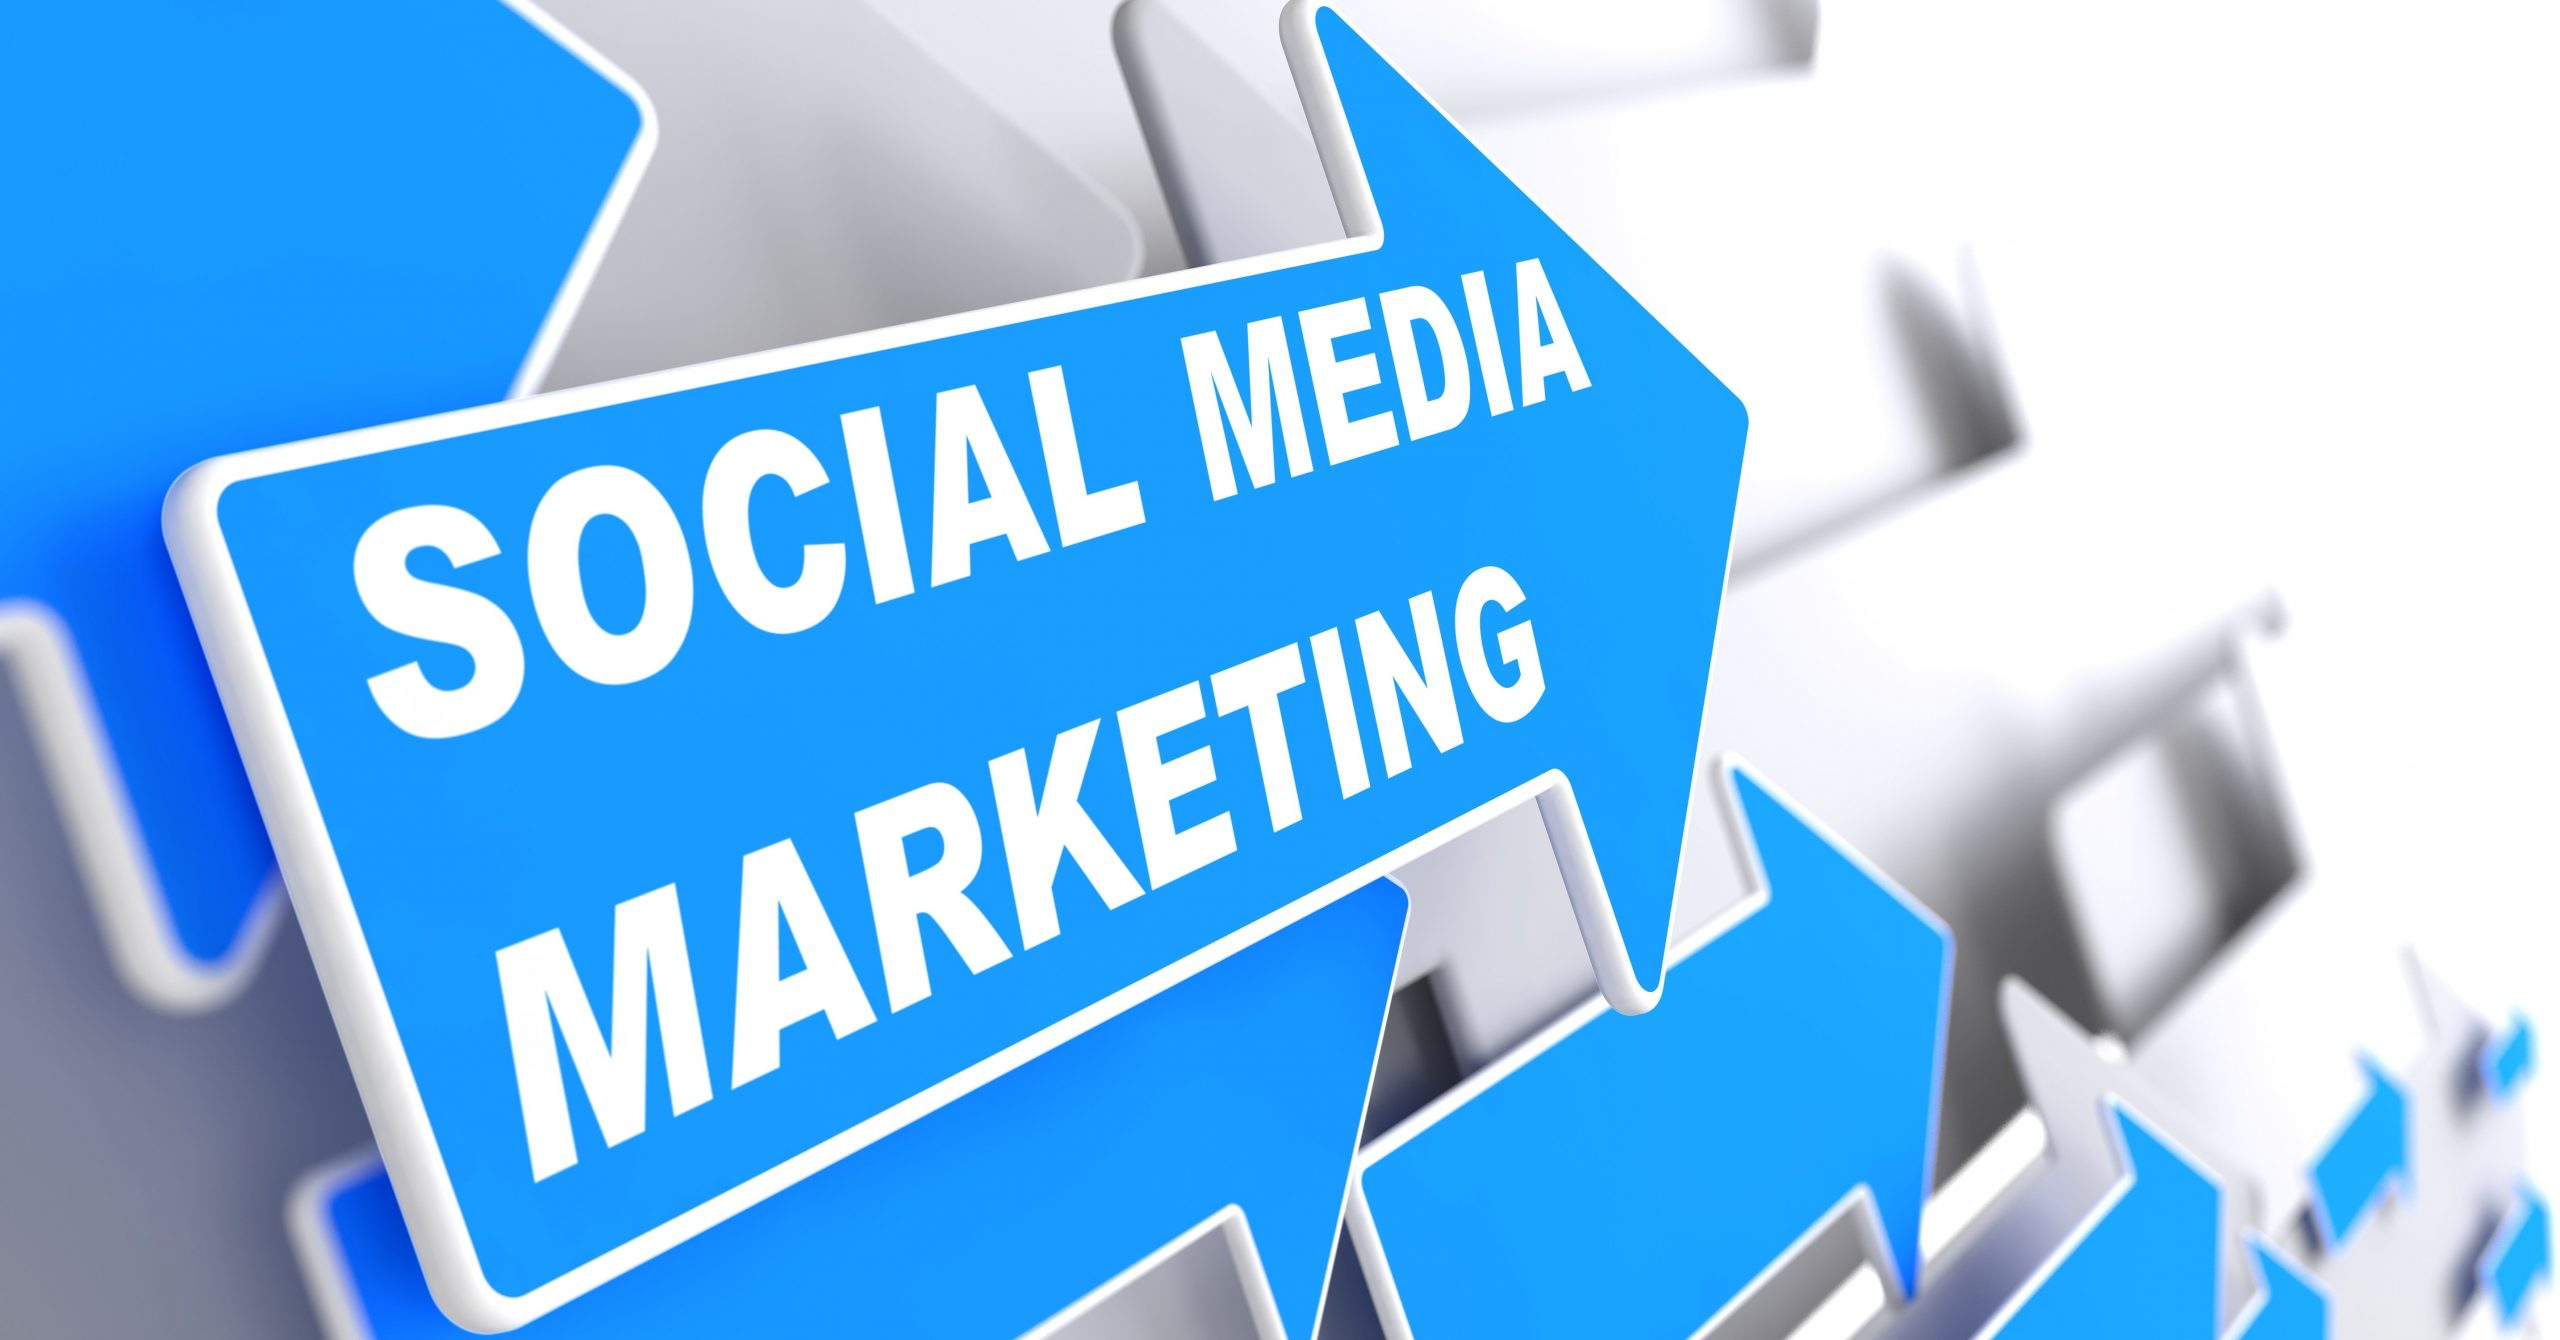 Use Social Media Marketing Enhance Presence Exhibition Trade Show